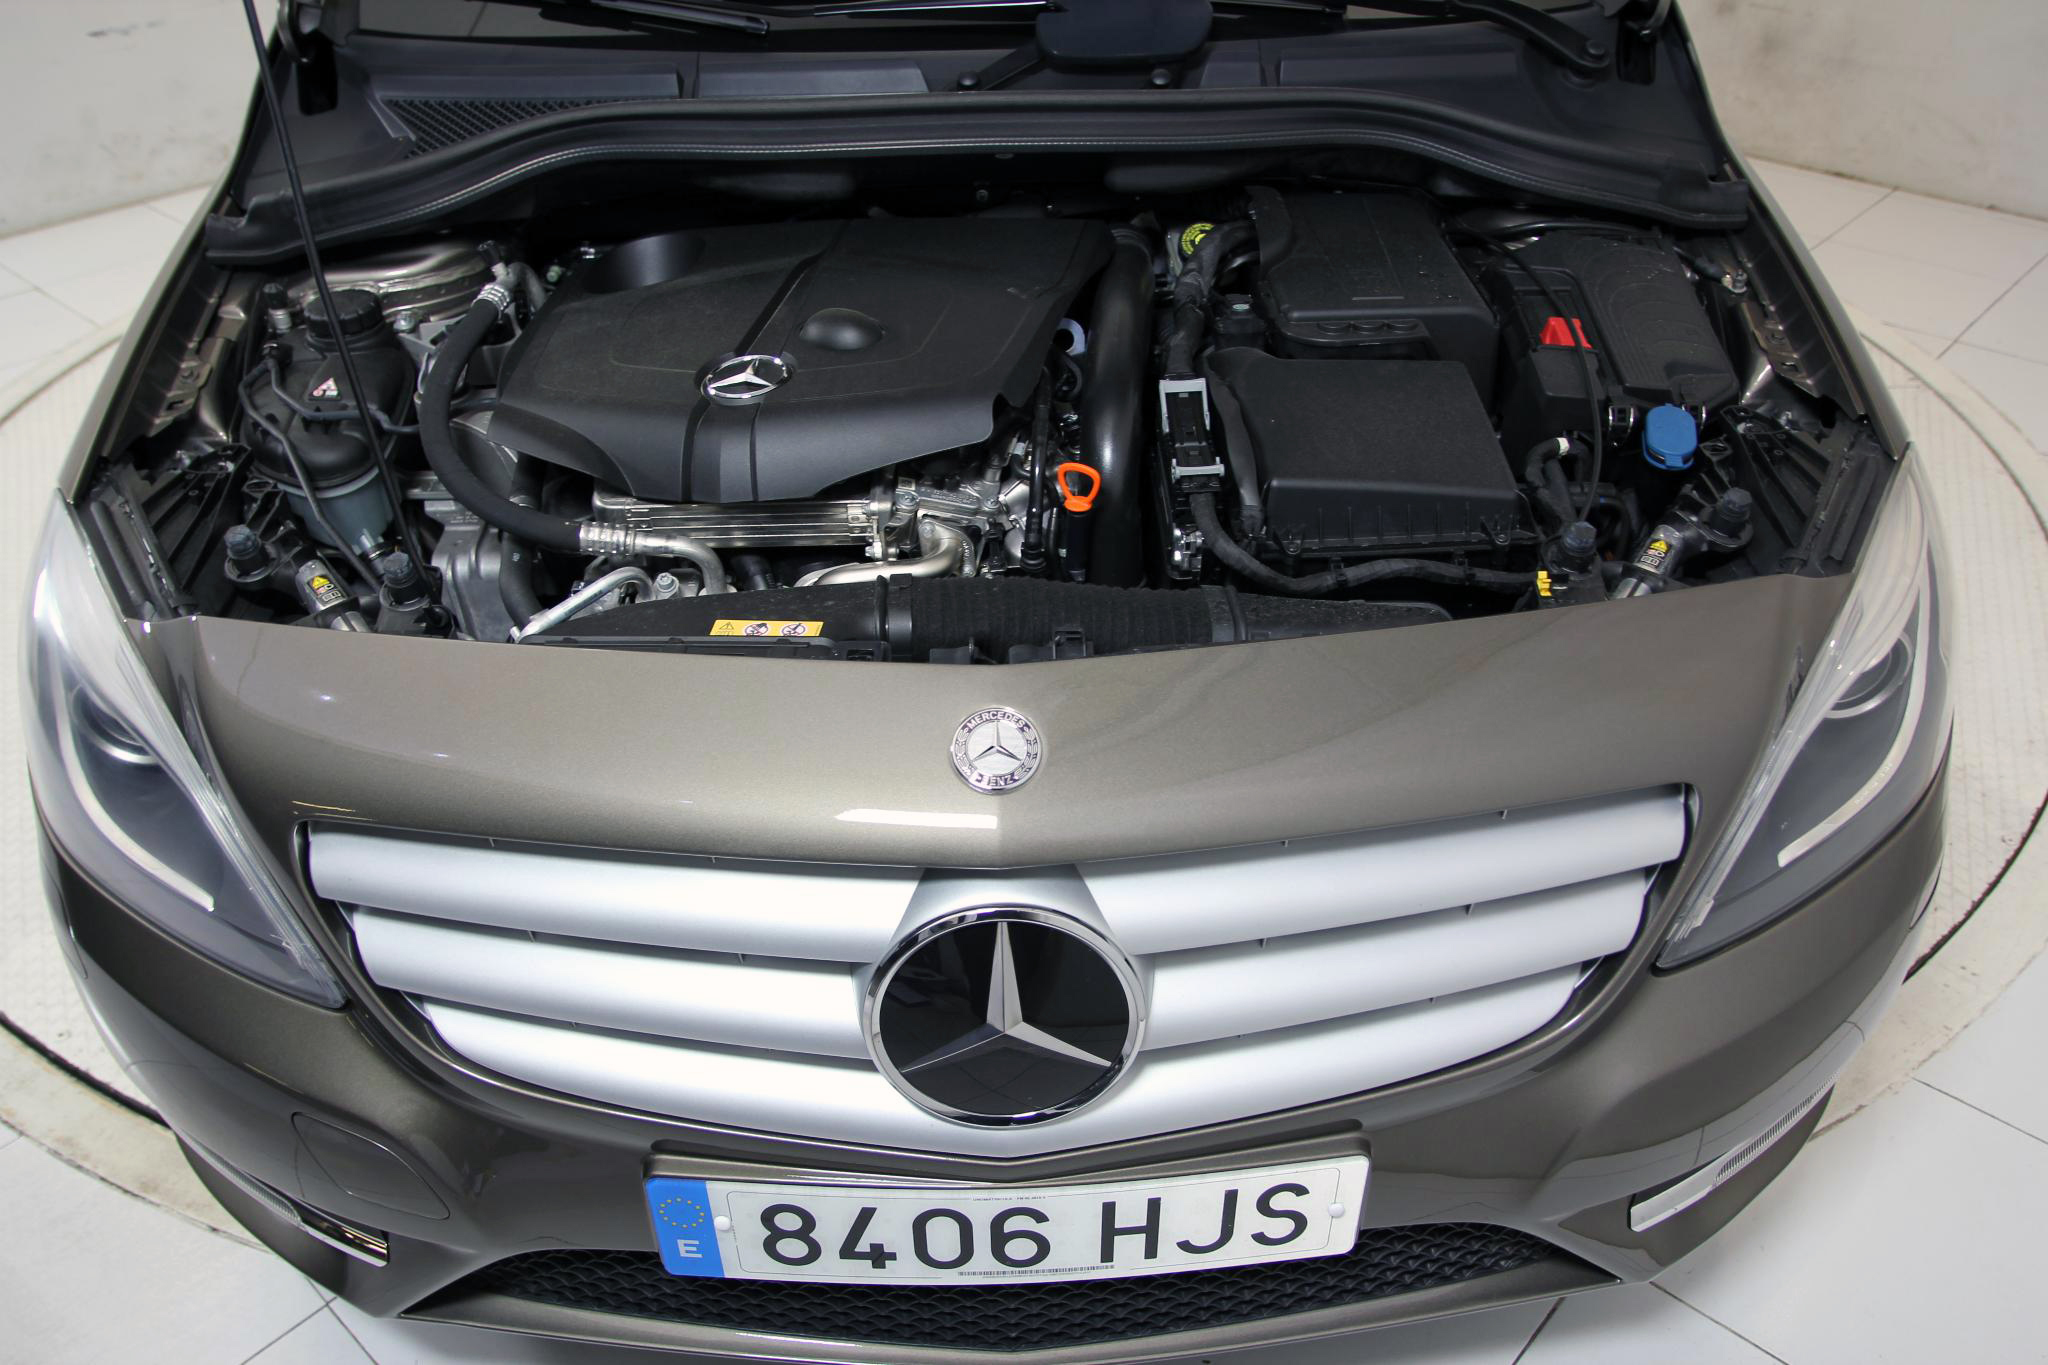 Mercedes-Benz Clase B CLASE B 180 CDI BLUE EFFICIENCY 5P imagen 34